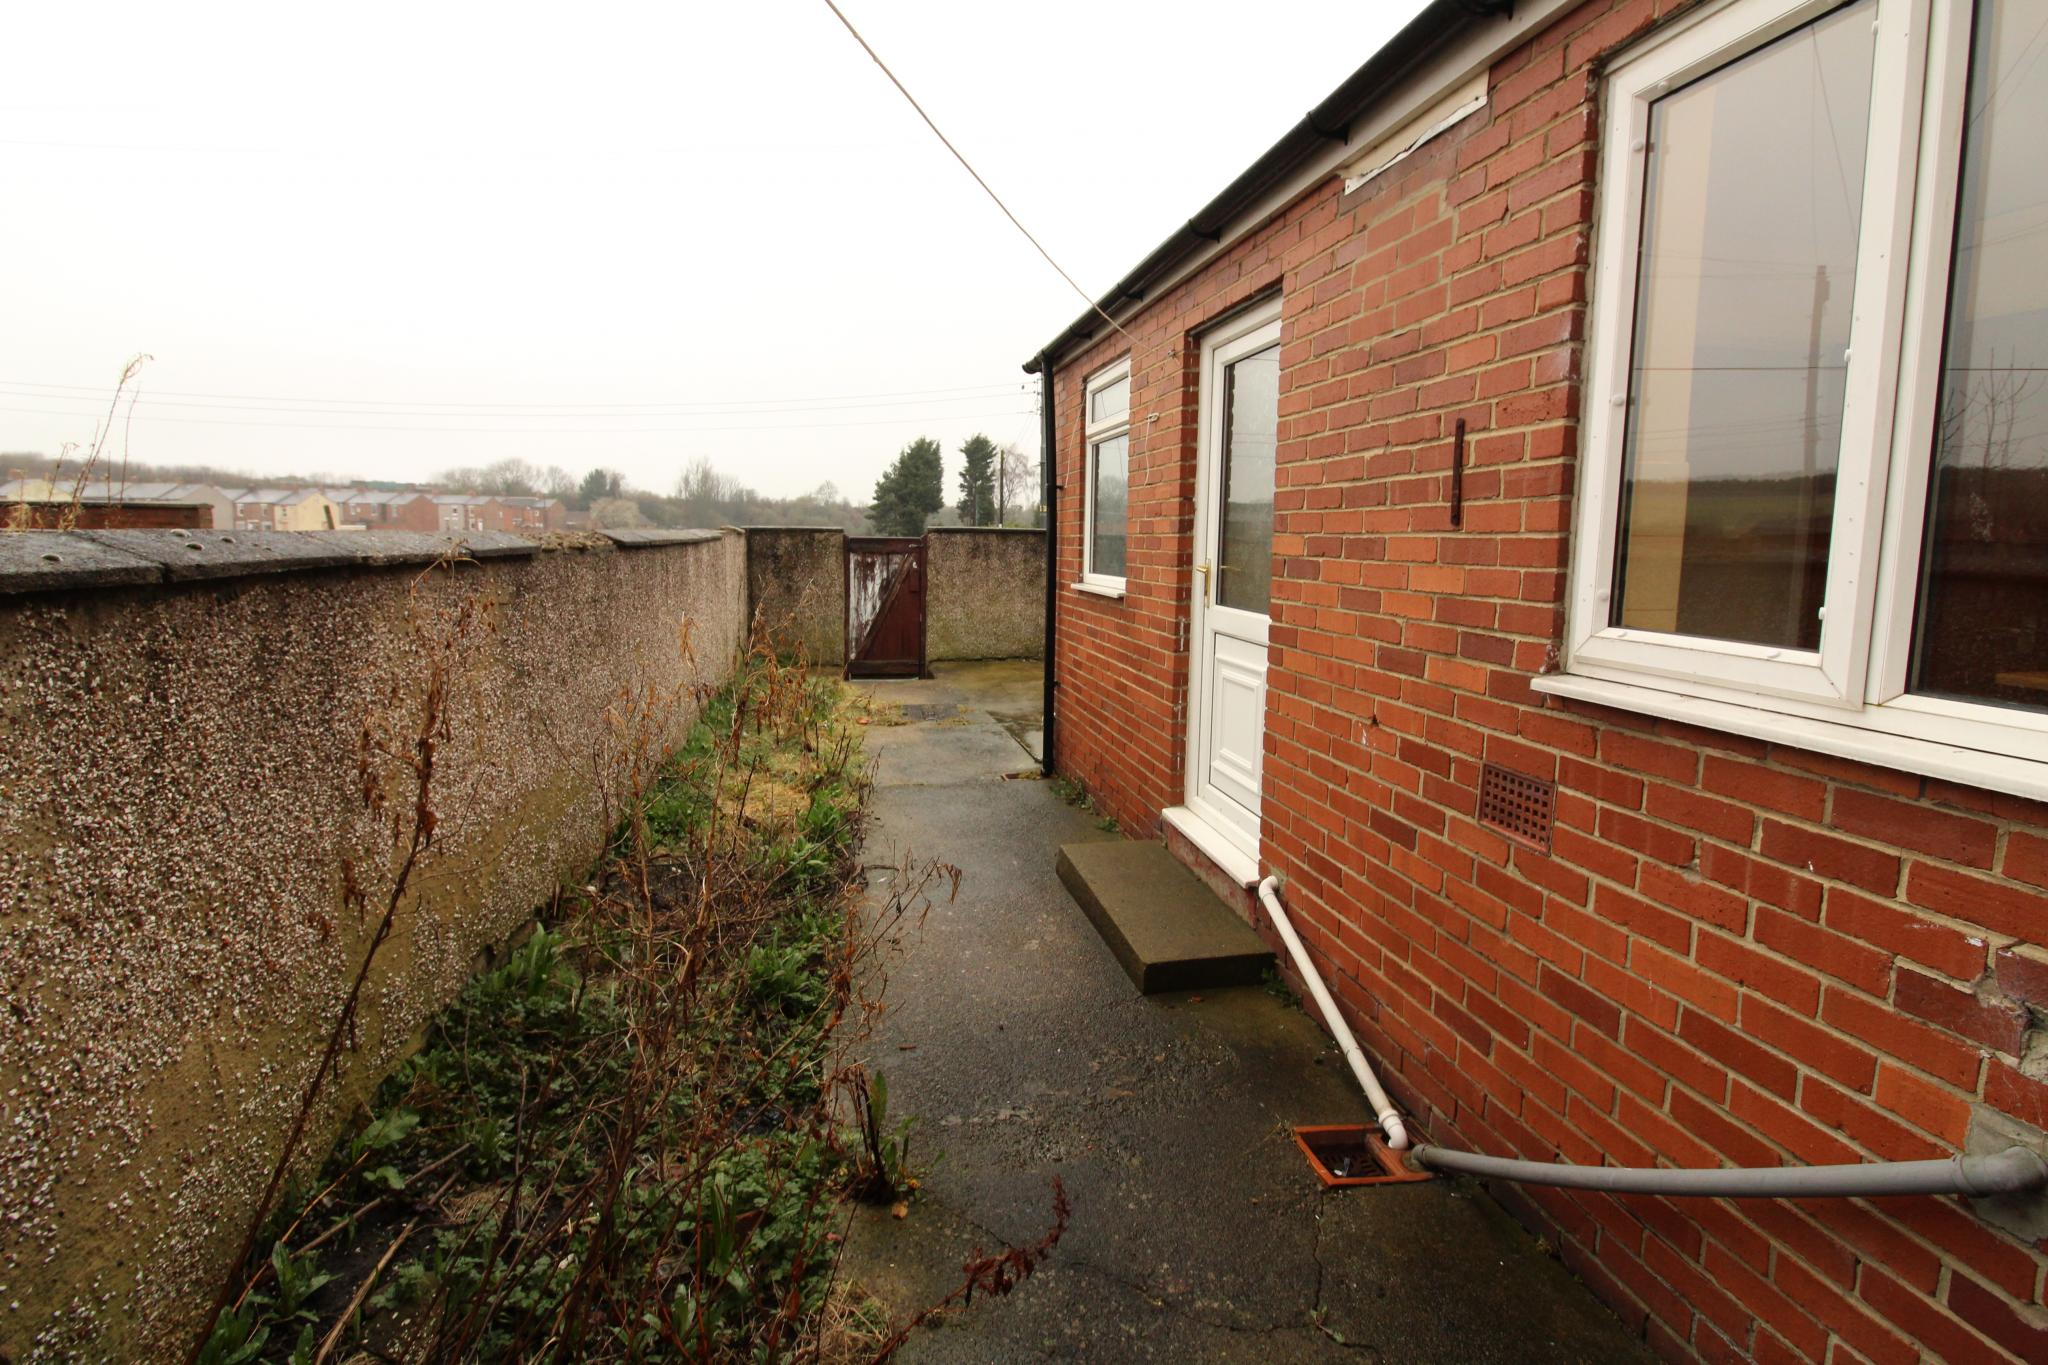 2 Bedroom Mid Terraced House For Sale - Exterior Yard